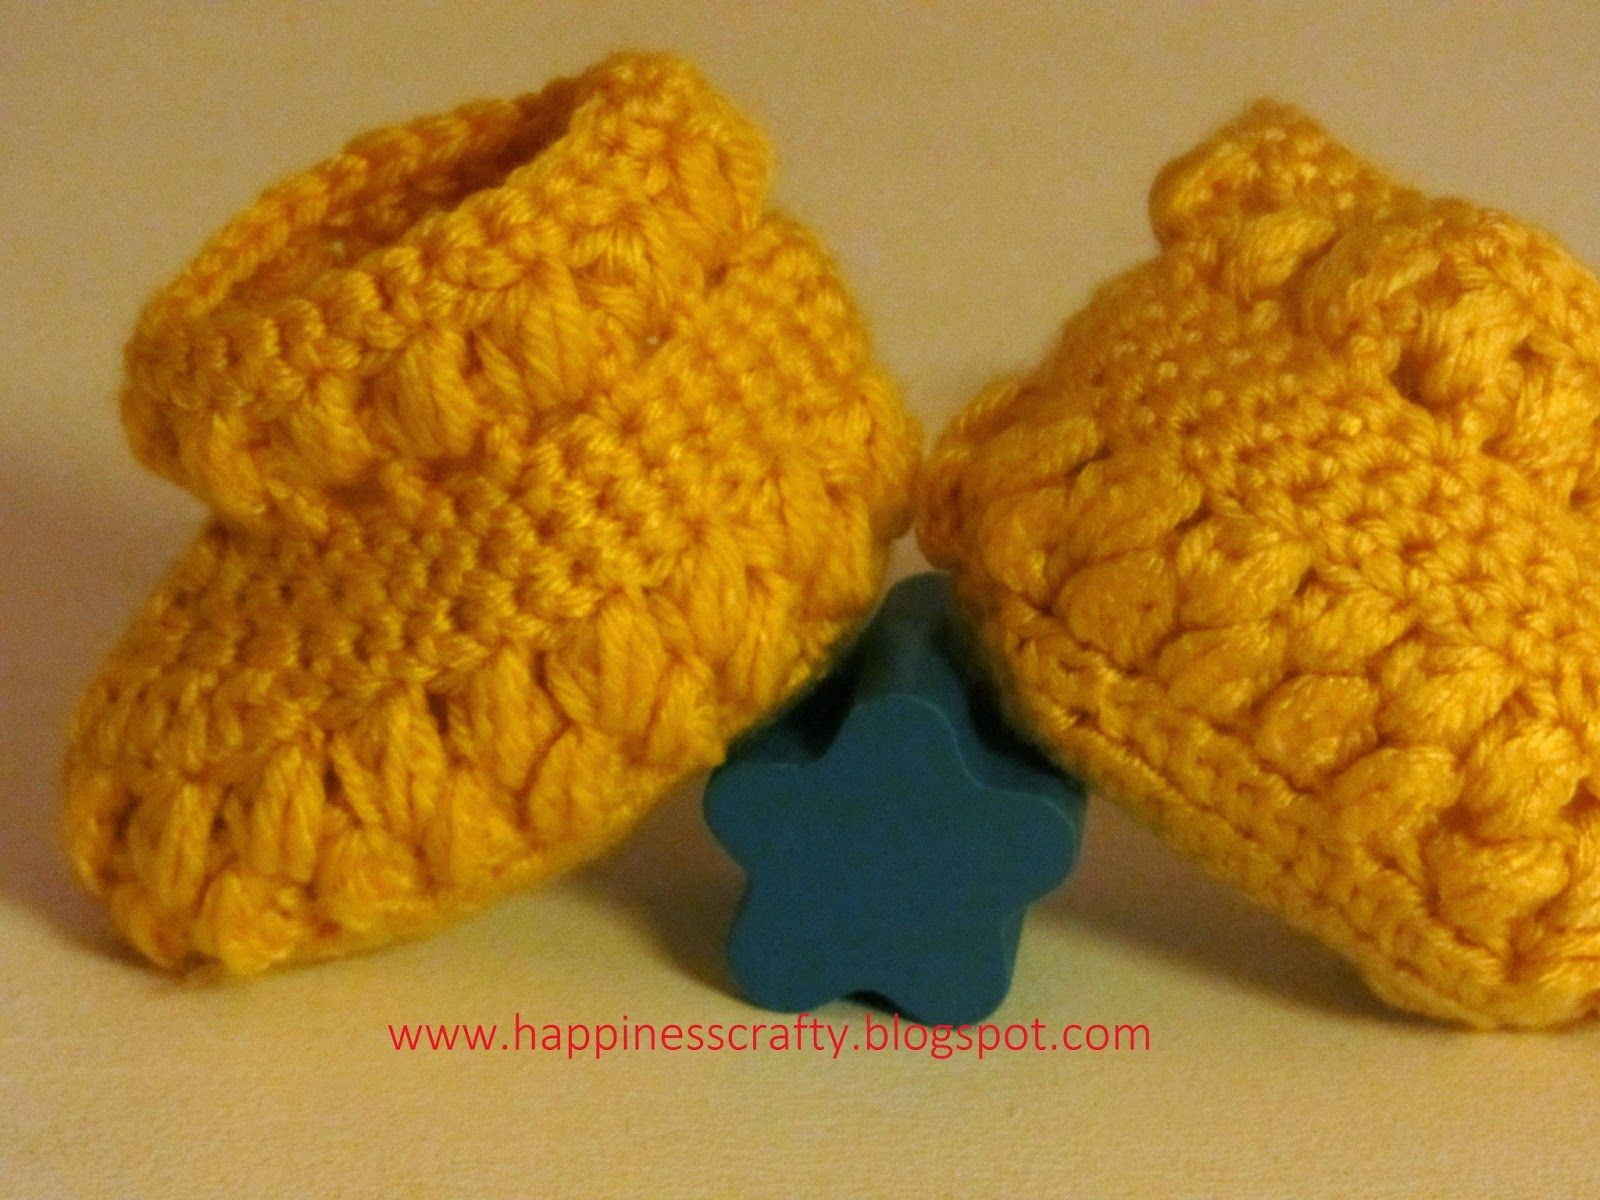 Happiness Crafty: Crochet Baby Booties ~ Newborn to 12 mth sizes